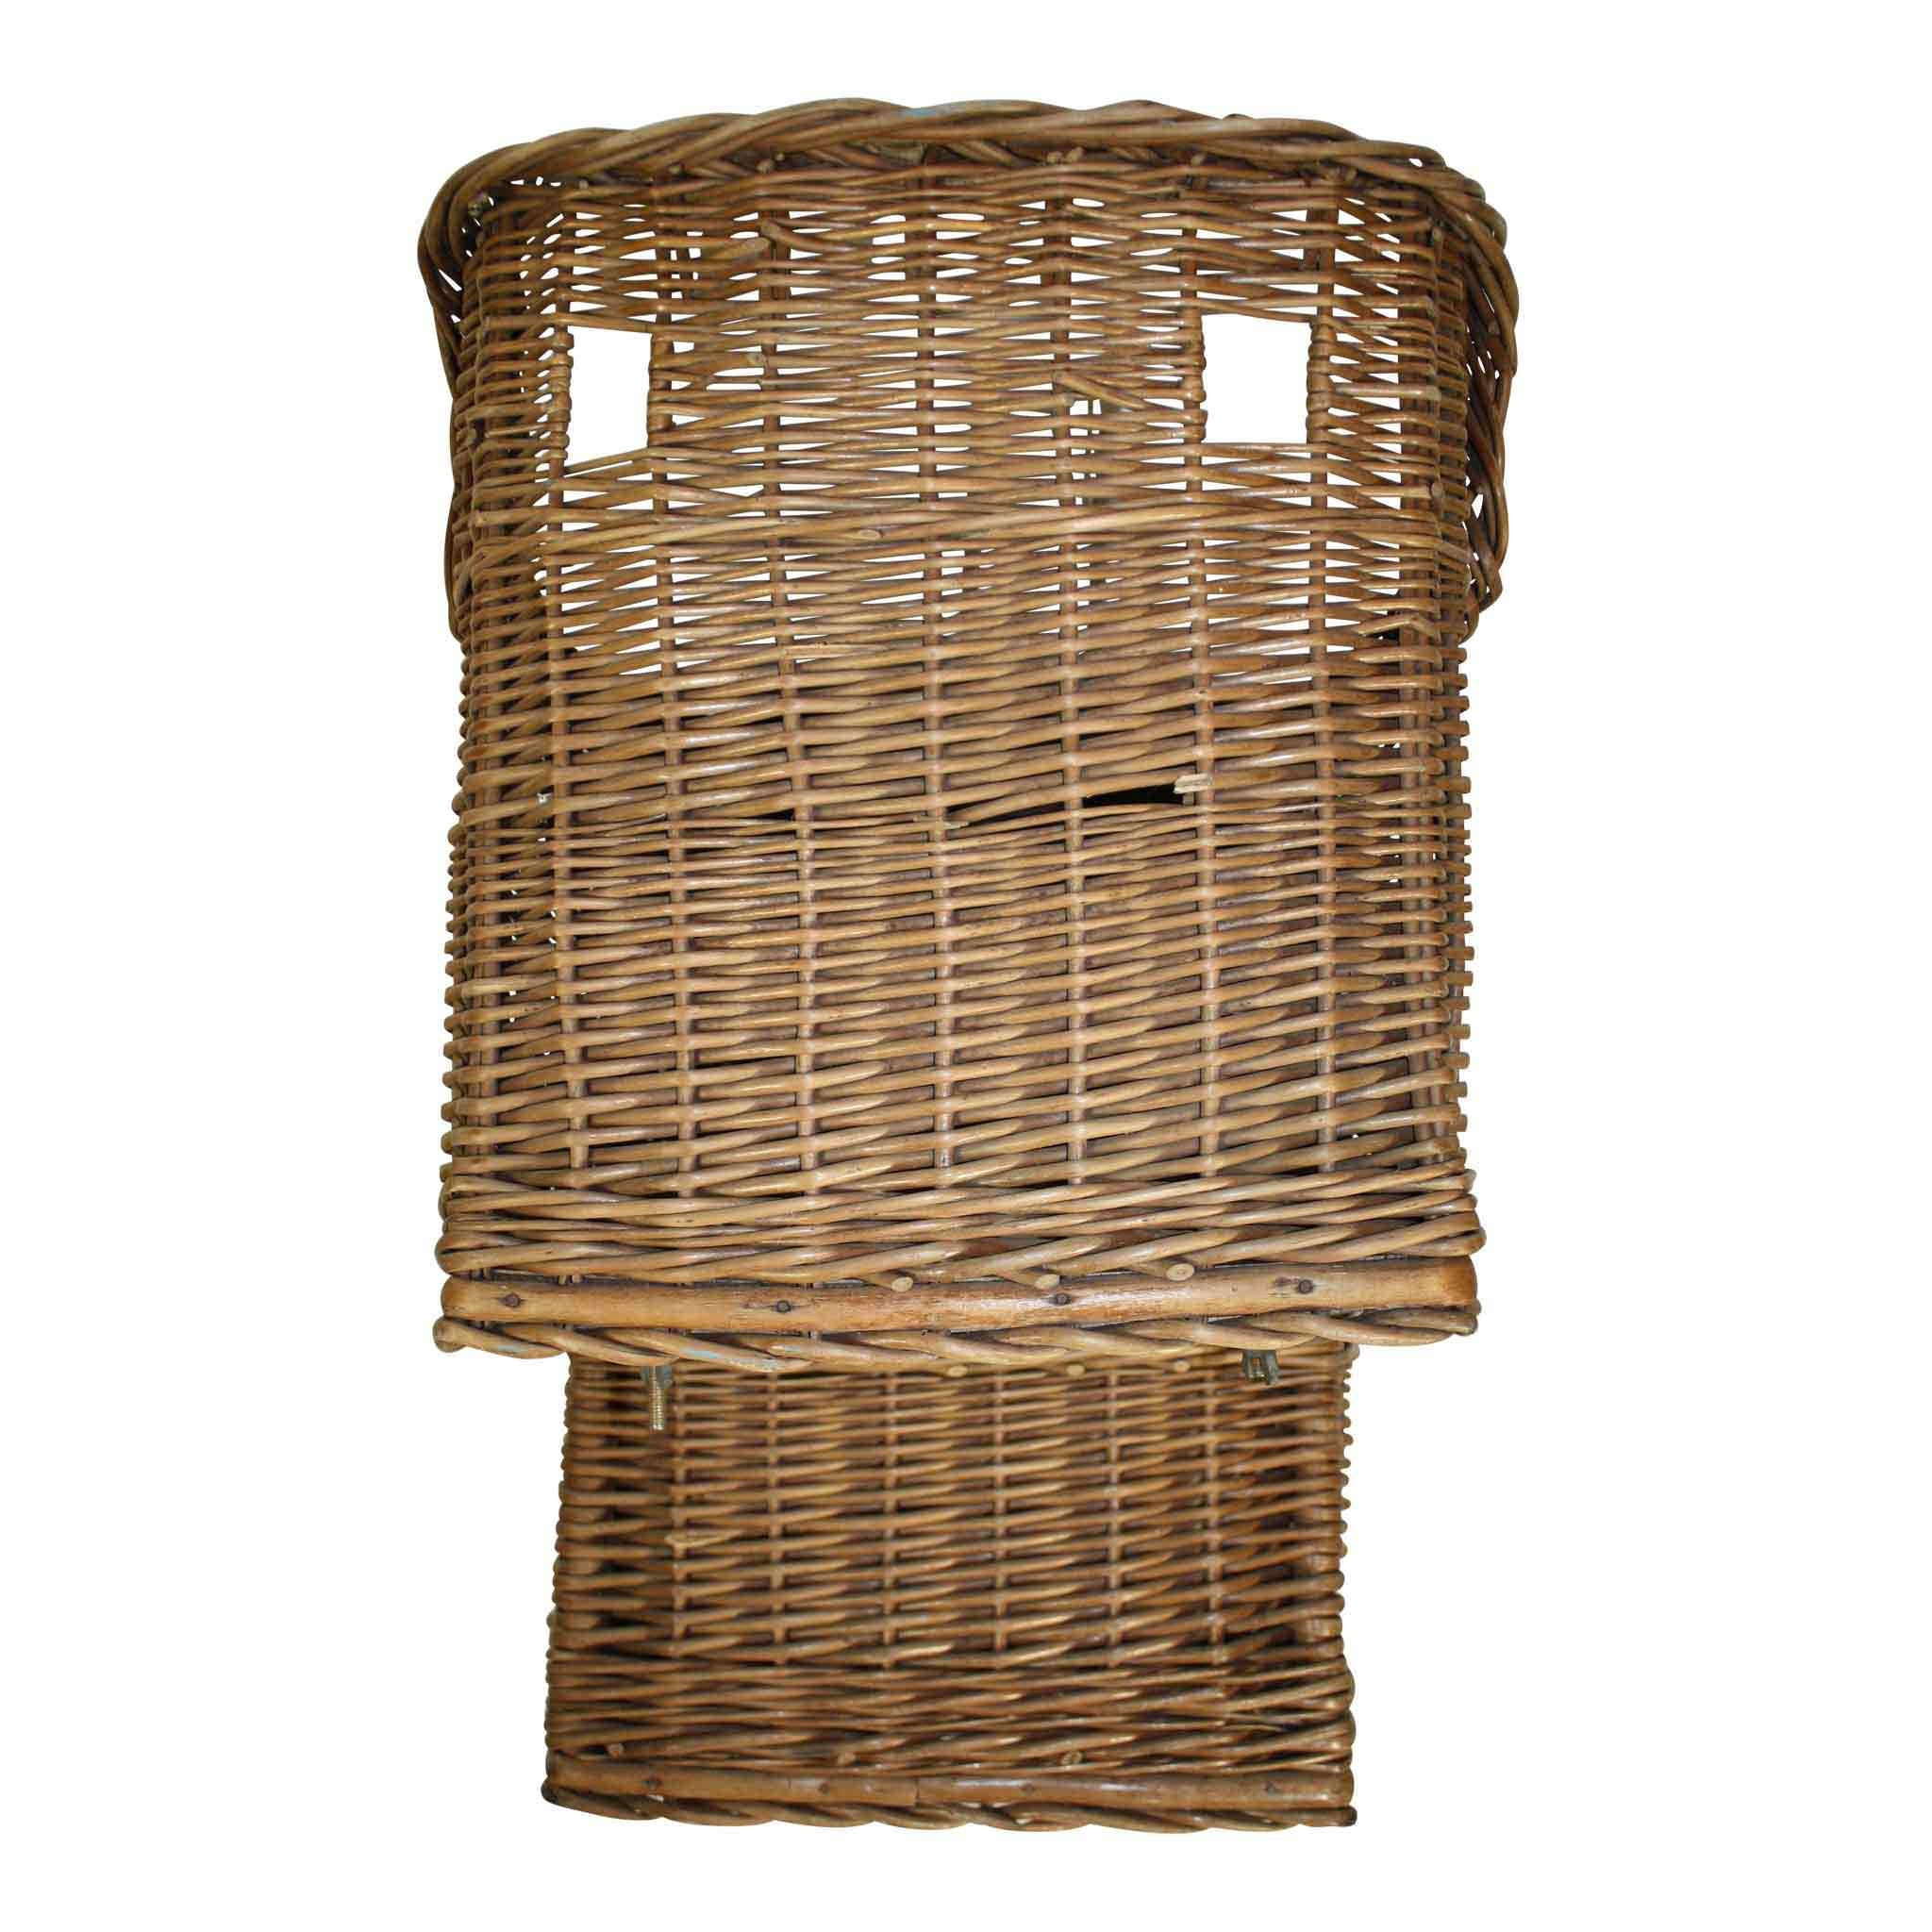 Wicker Bike Seat for Baby